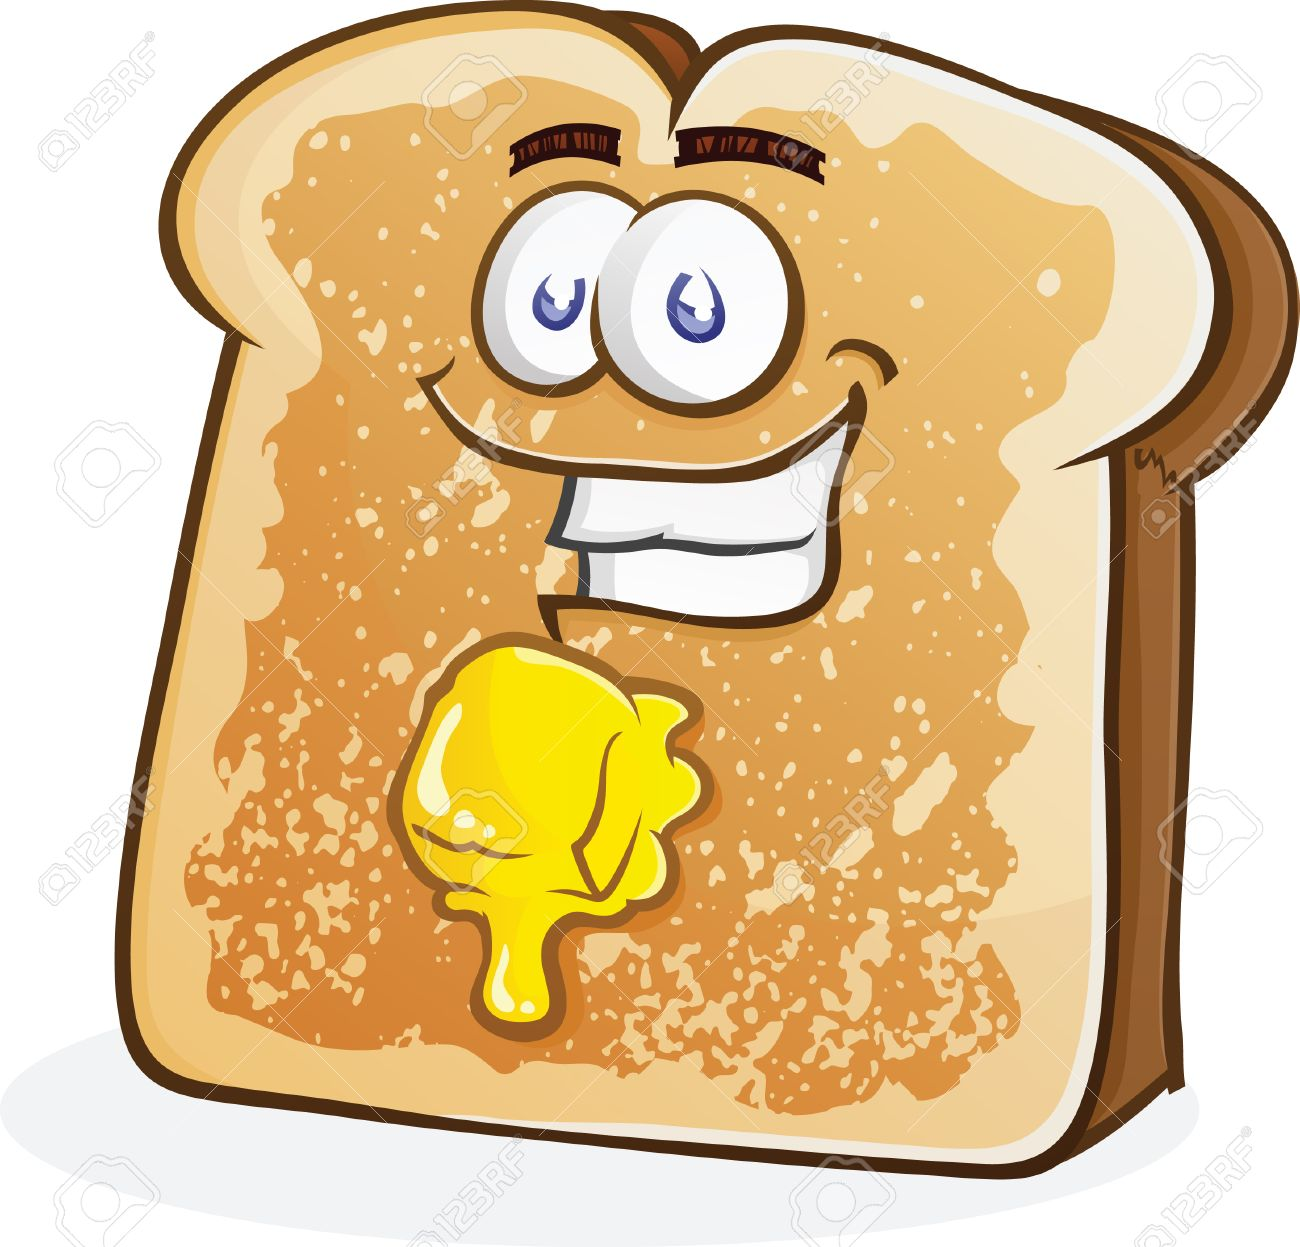 Buttered Toast Cartoon Character Stock Vector - 26740270